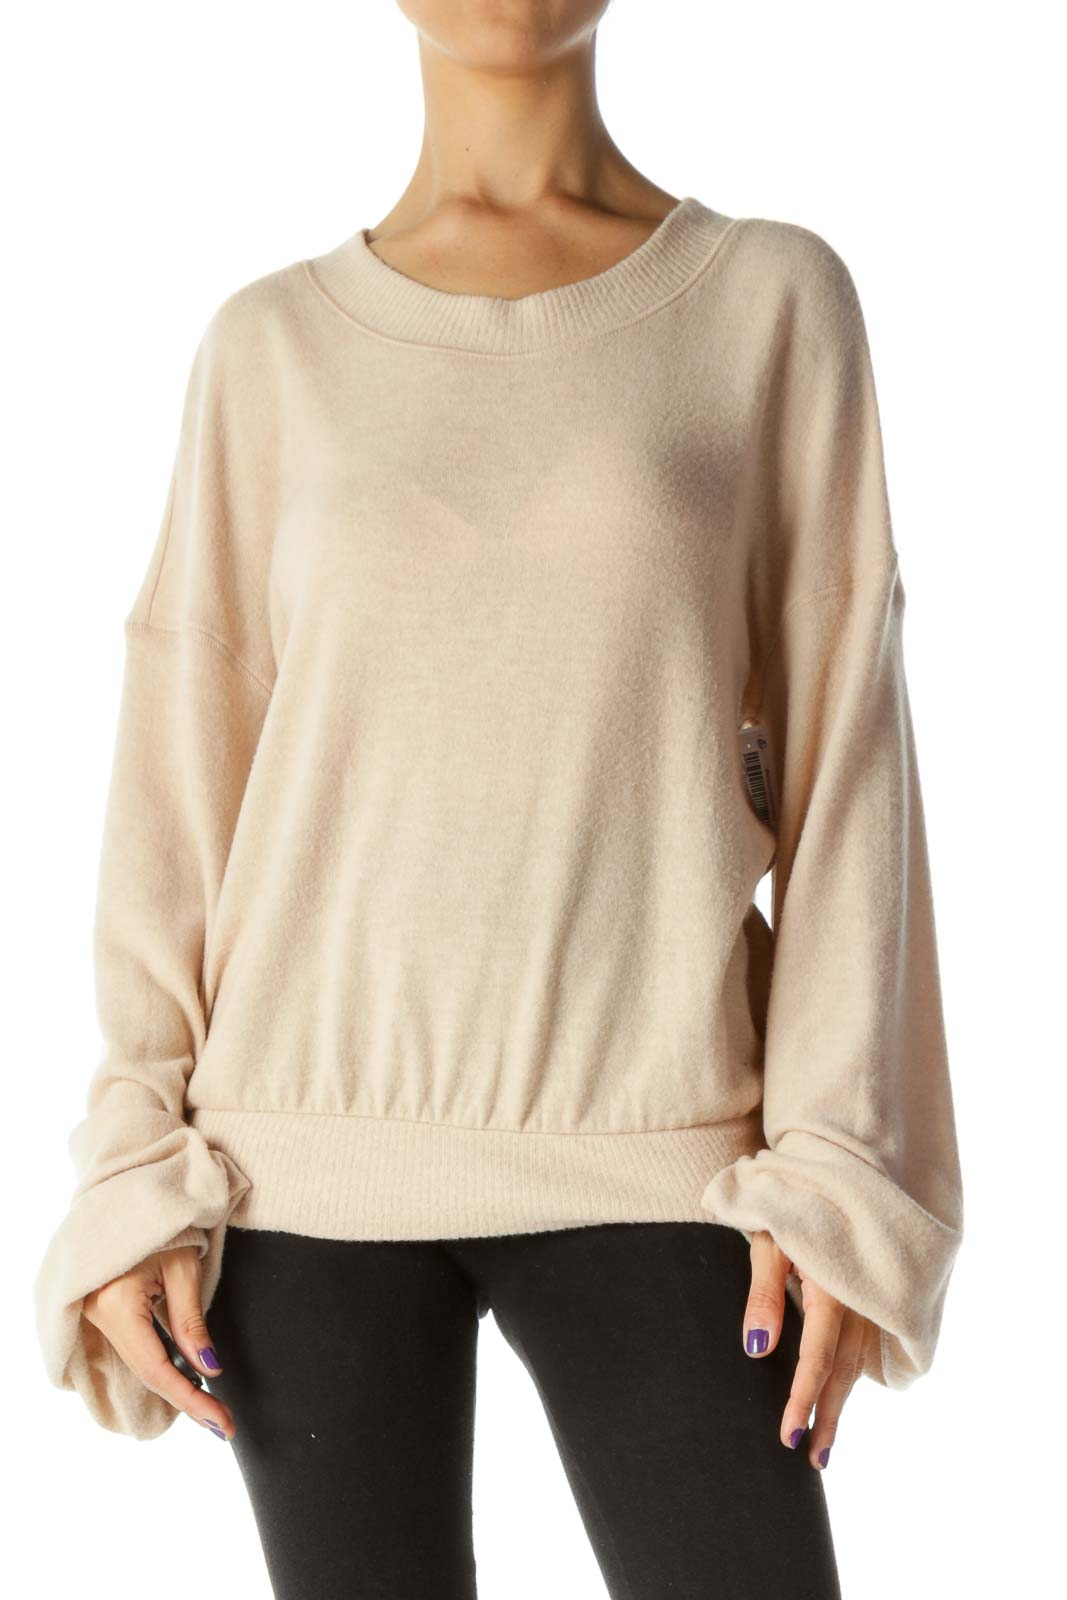 Light Peach Round Neck Super Soft Touch Bishop Sleeves Sweater